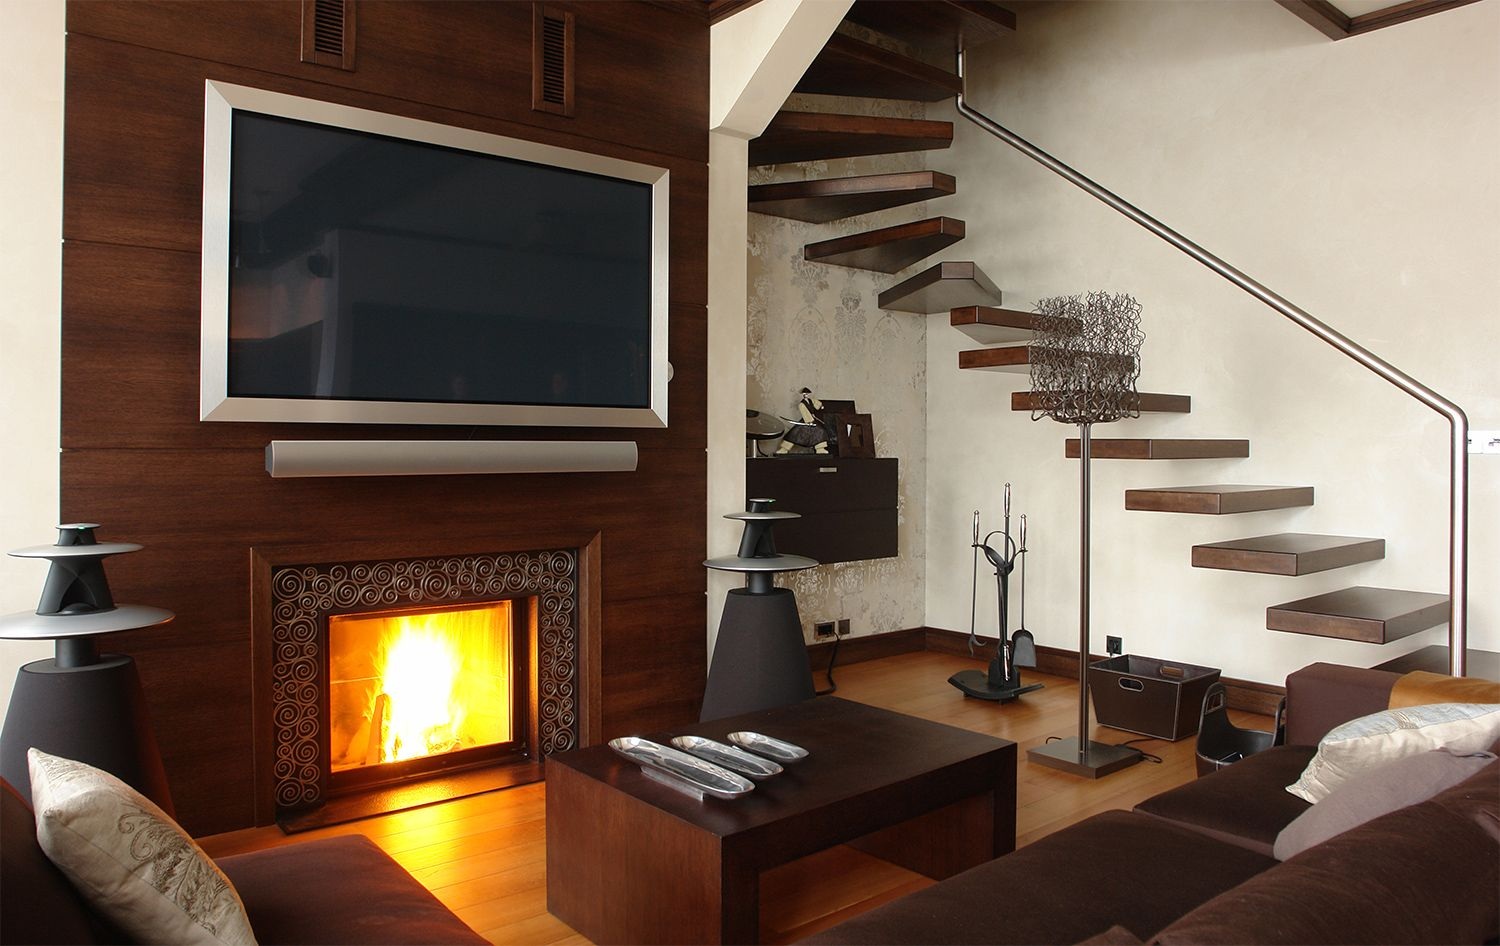 Flat Screen Tv Setup Ideas 4 Reasons Not To Mount Your Tv Over Your Fireplace And A